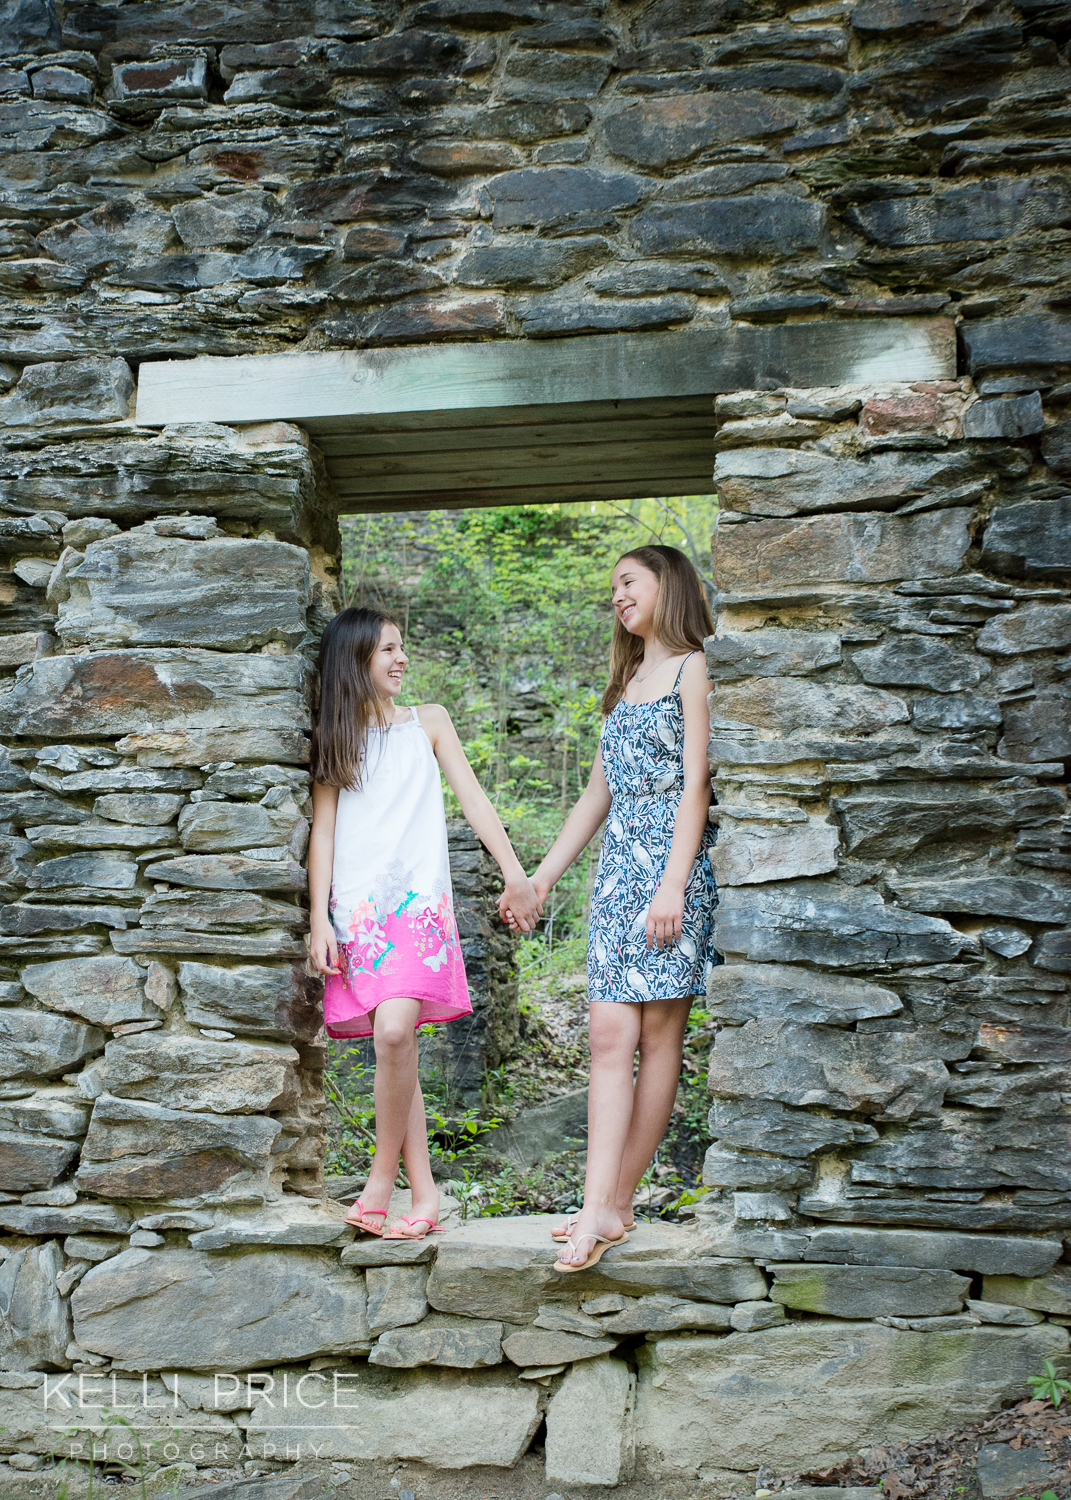 Sisters Holding Hands at Sope Creek, Marietta, Georgia